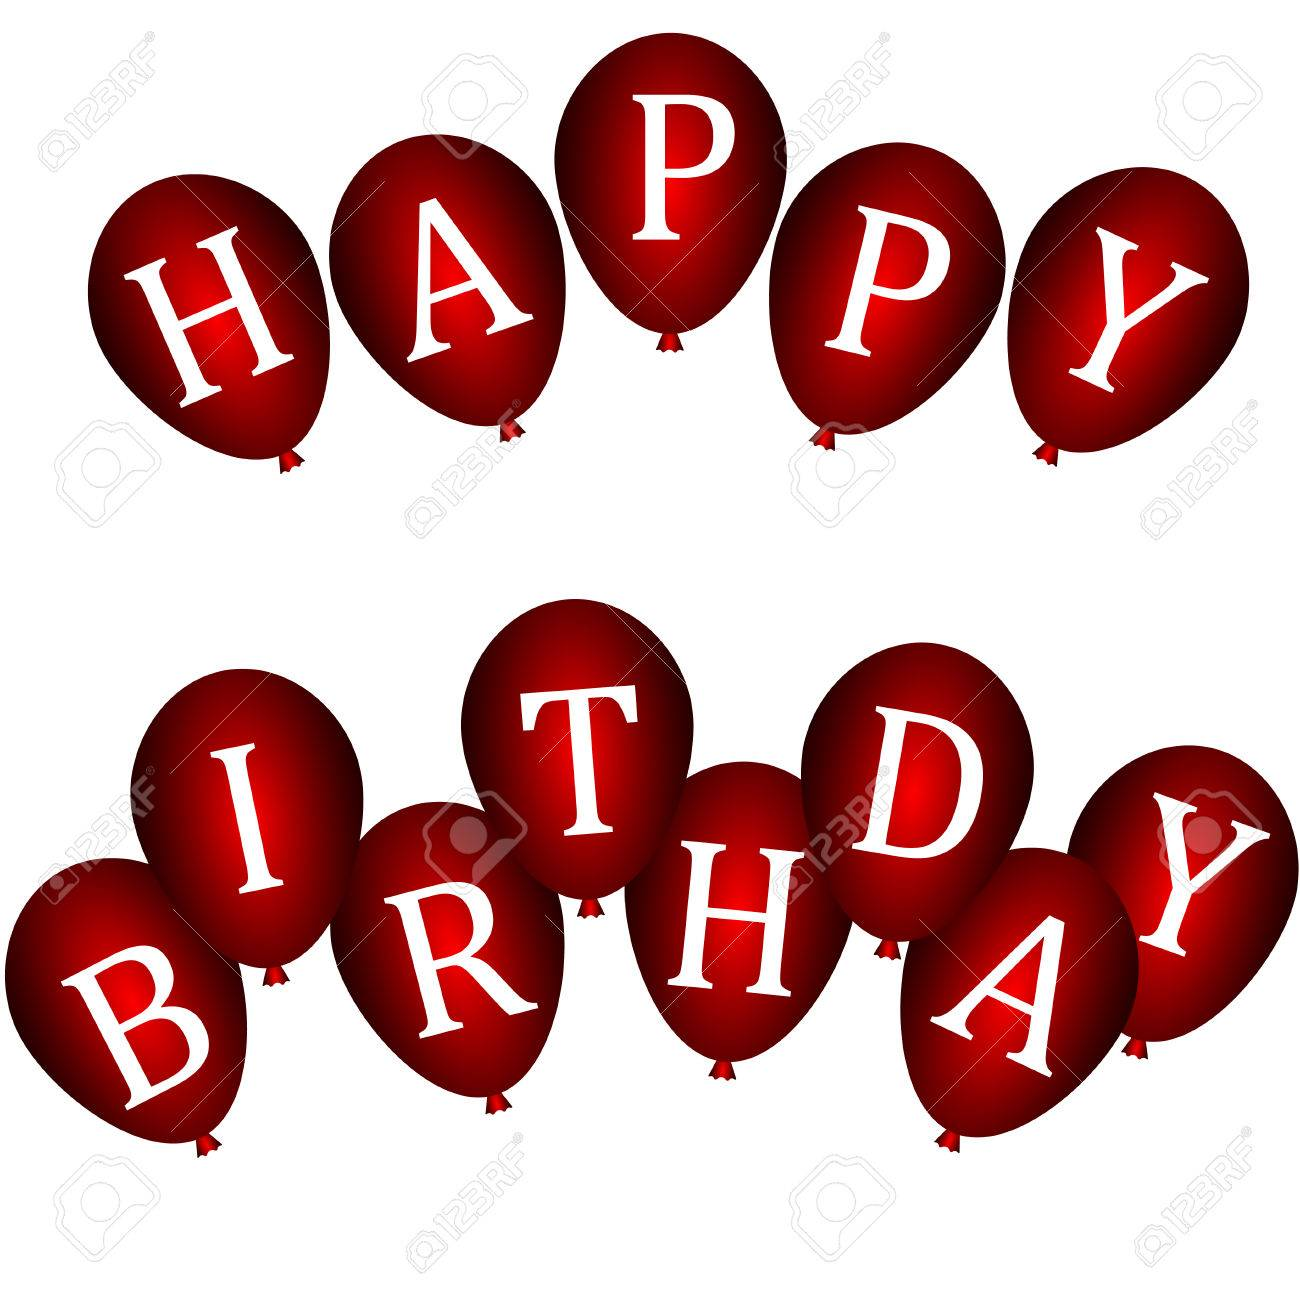 red happy birthday sign ; 25166163-happy-birthday-banners-with-red-balloons